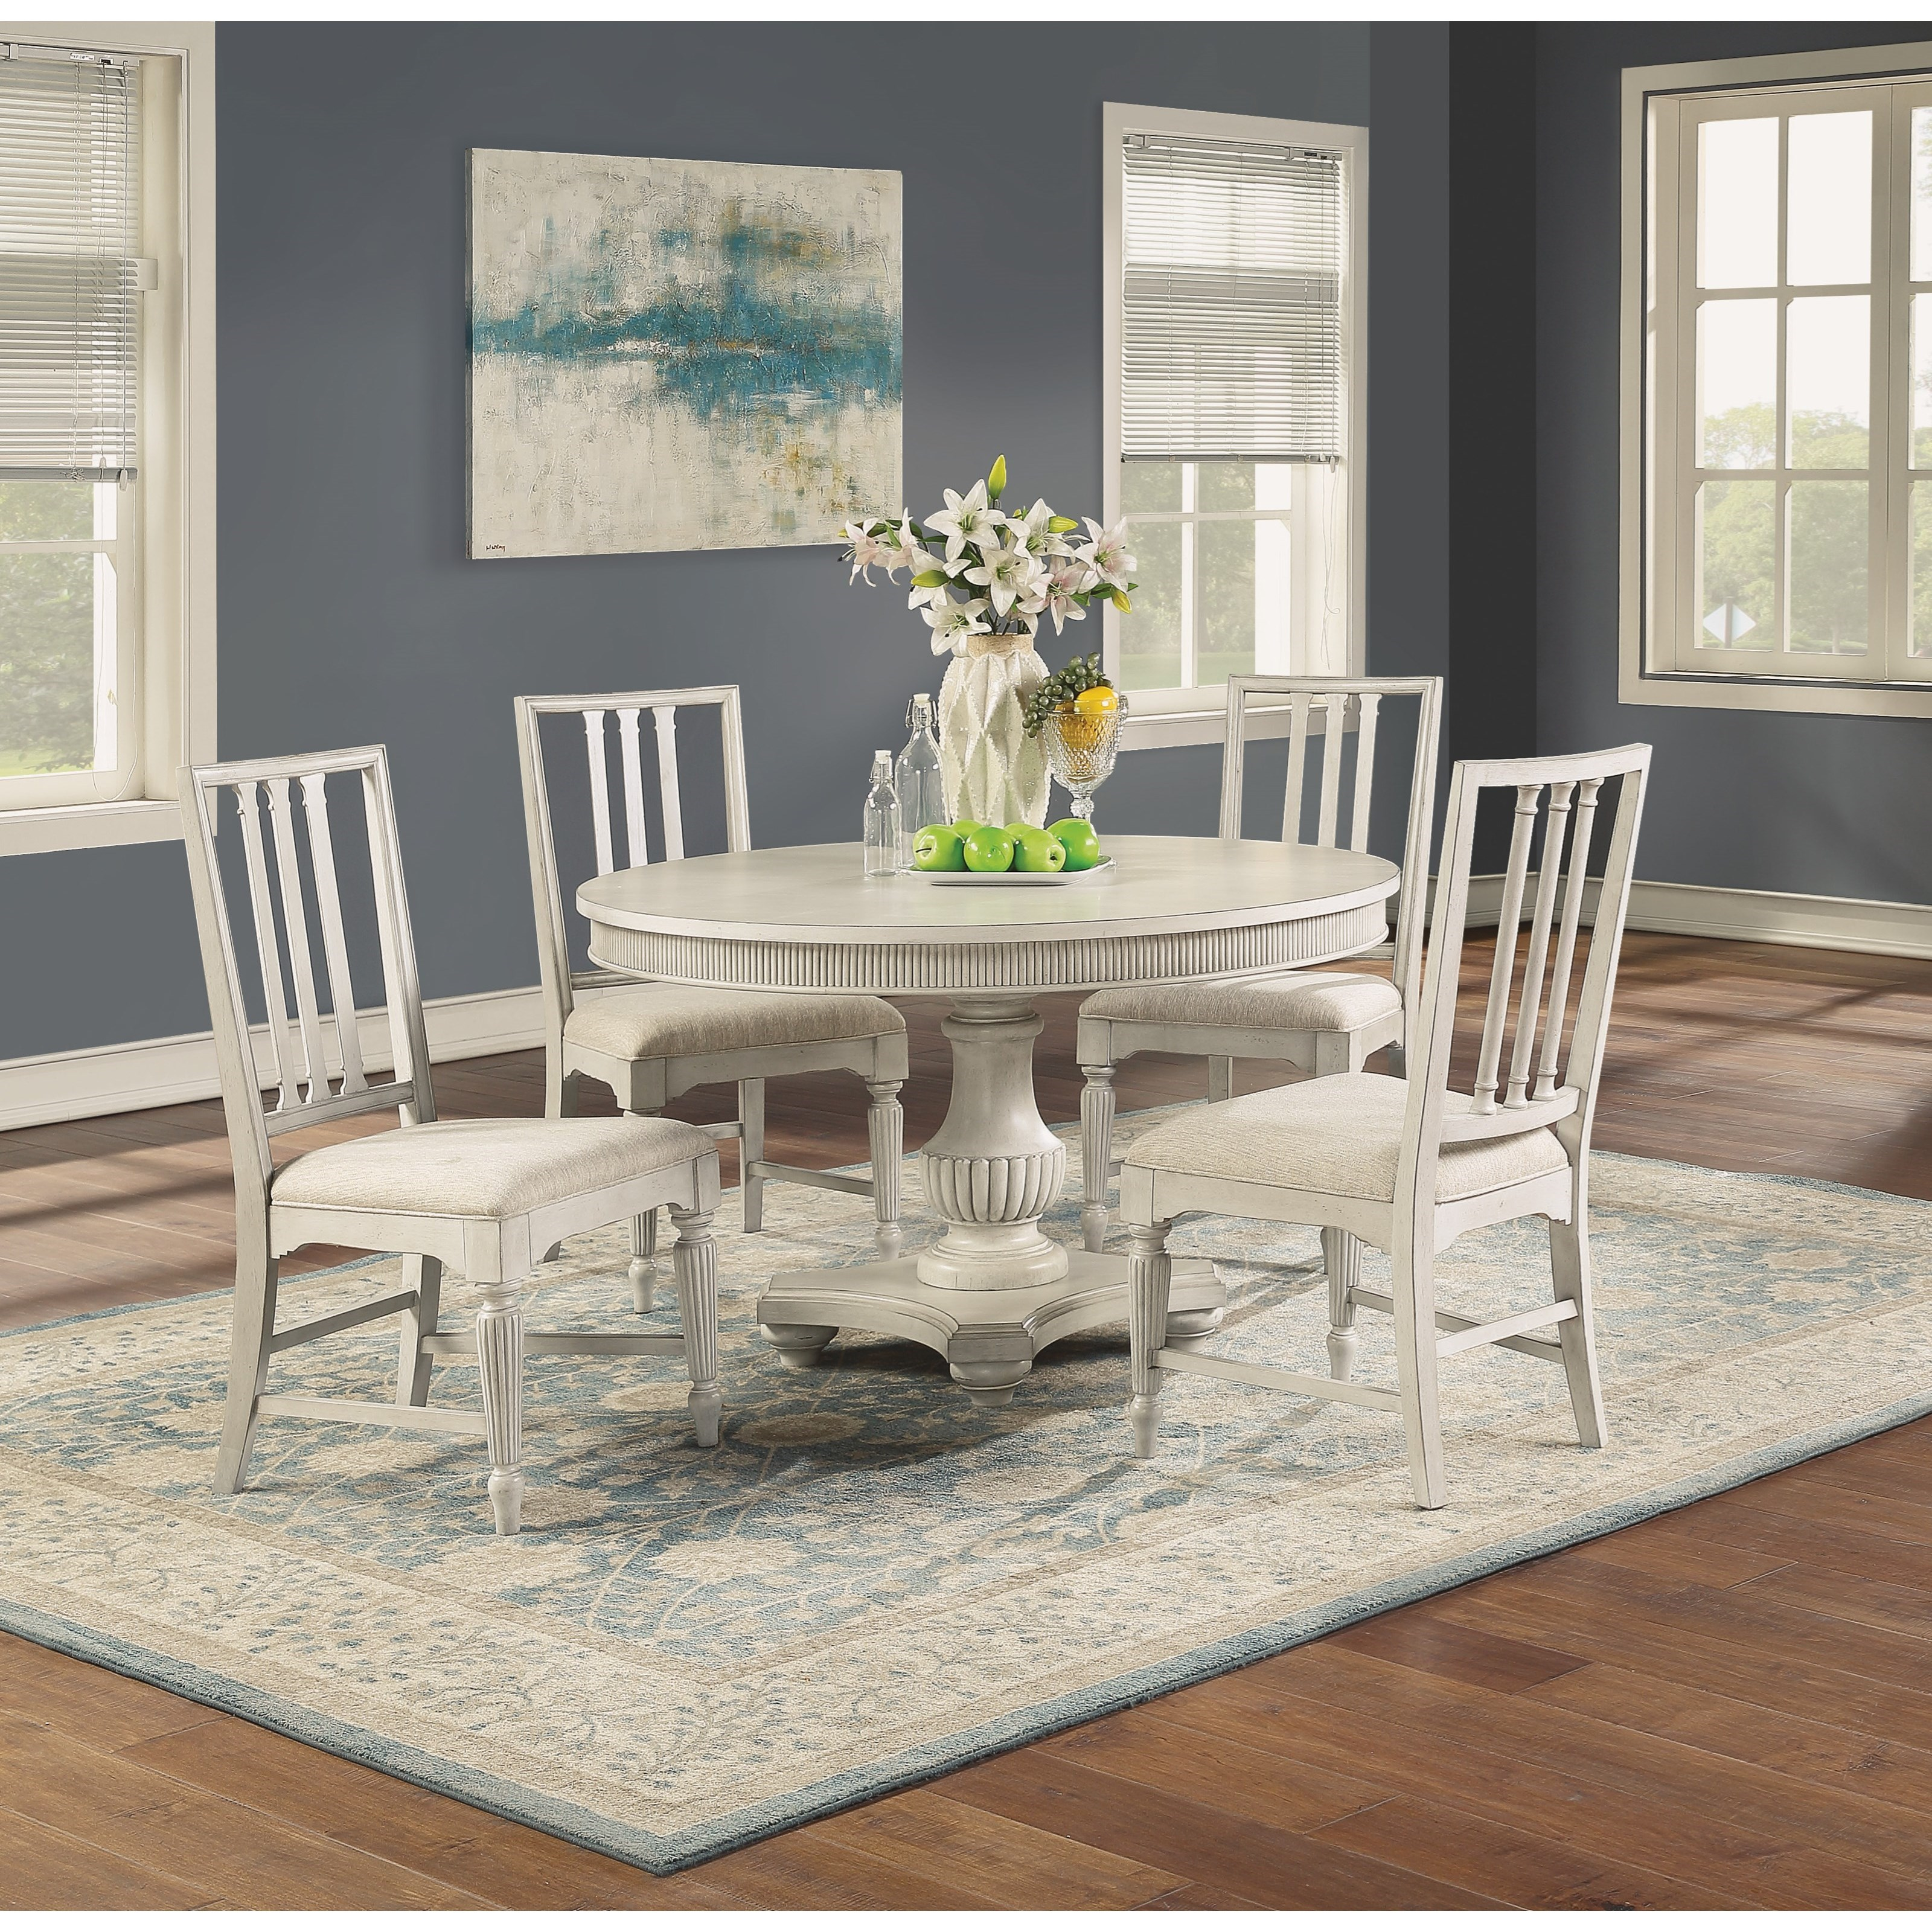 Harmony 5-Piece Dining Table Set by Flexsteel Wynwood Collection at Northeast Factory Direct